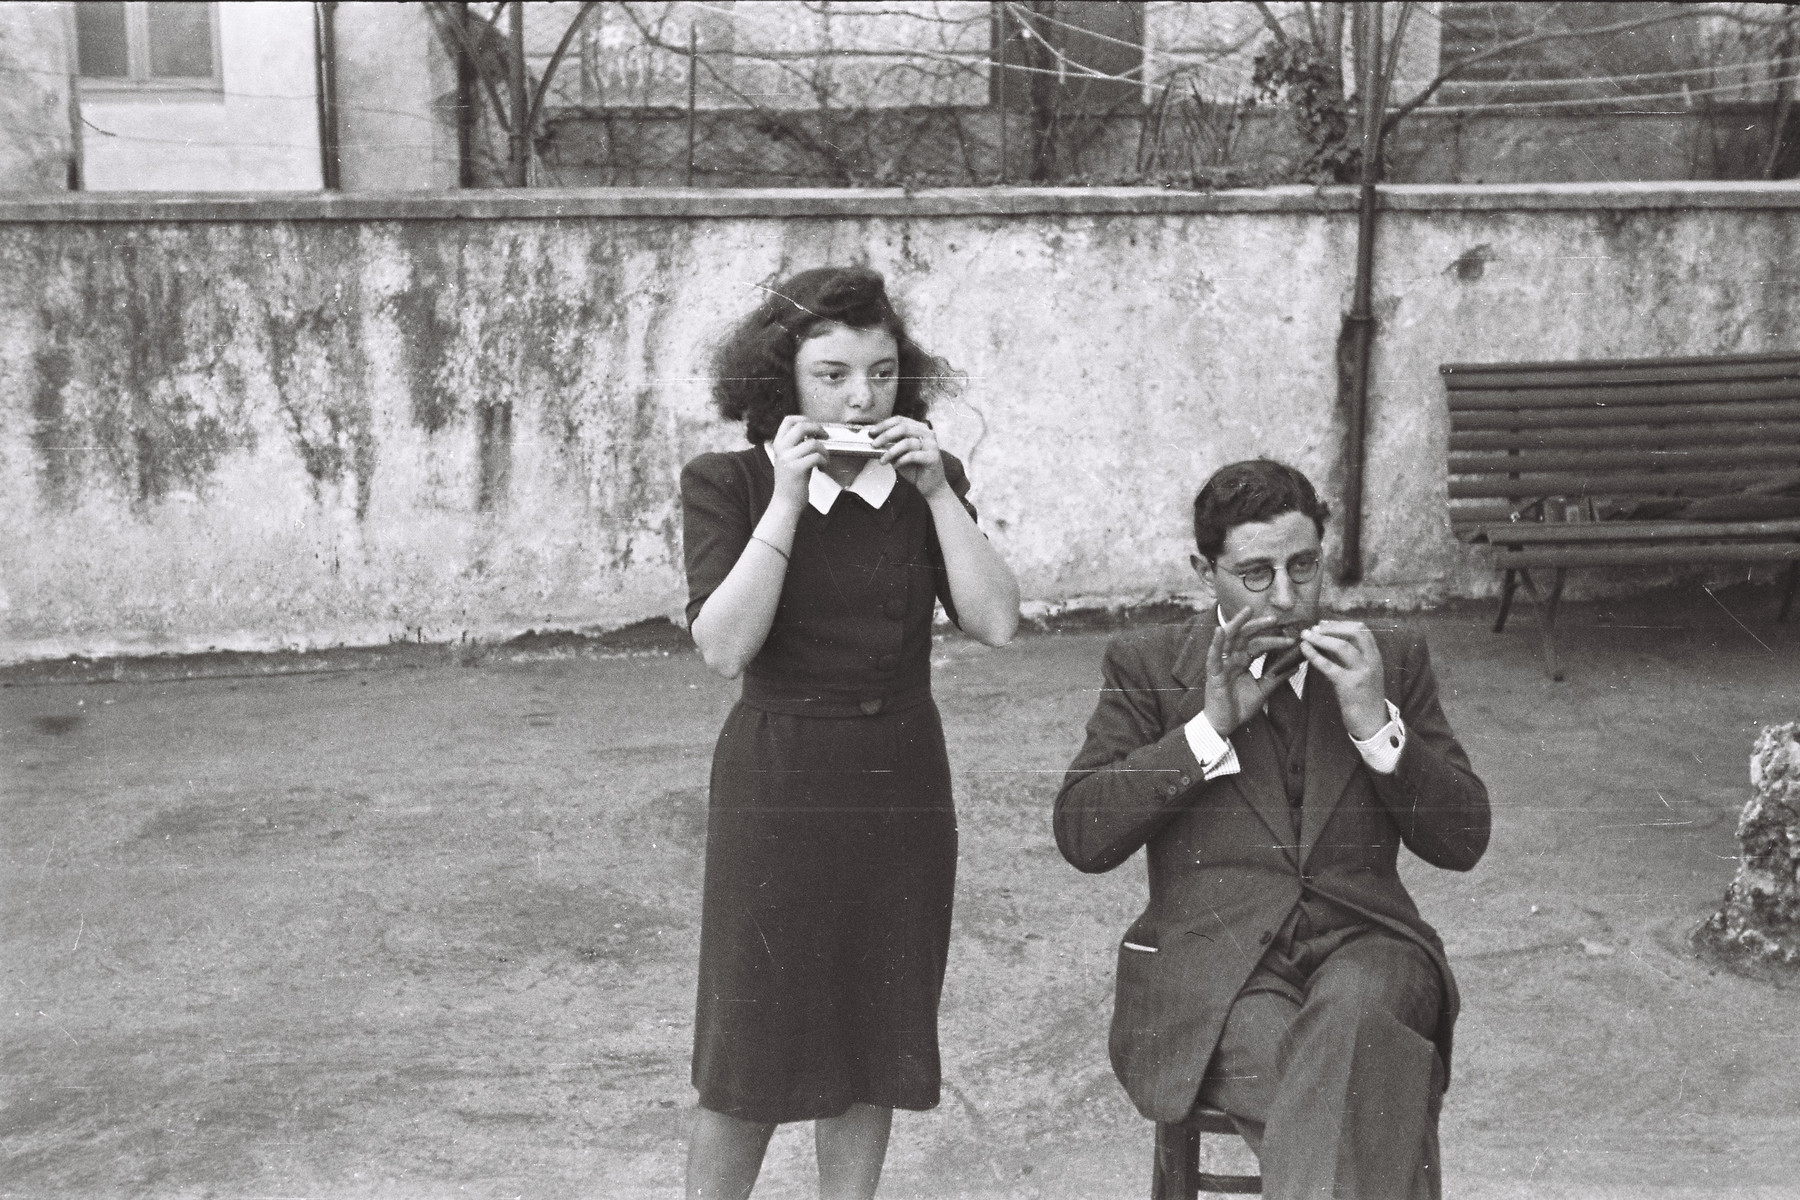 Nathan Cassuto and Anna Voghera play a duet on harmonicas in Cernobbio, near Lake Como.